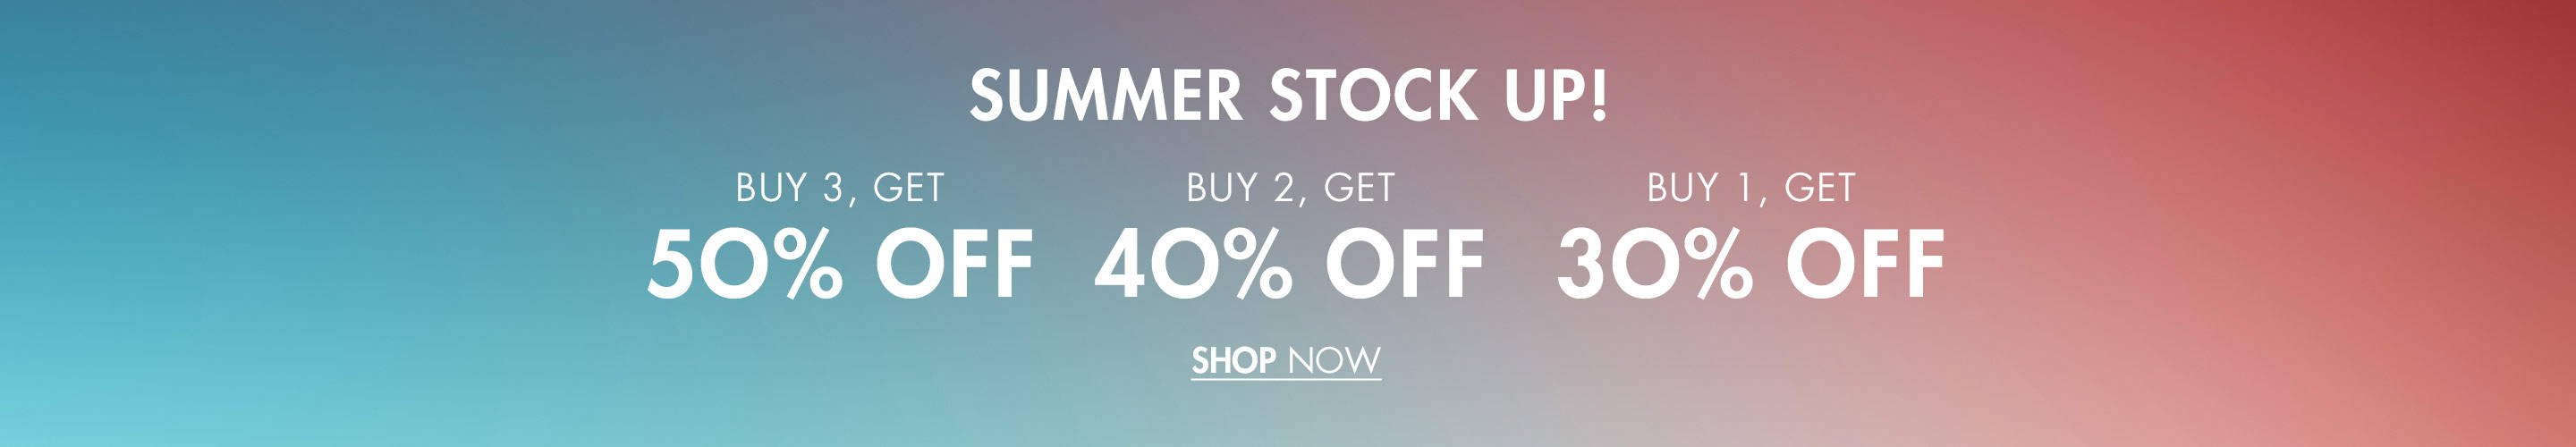 Summer Stock Up